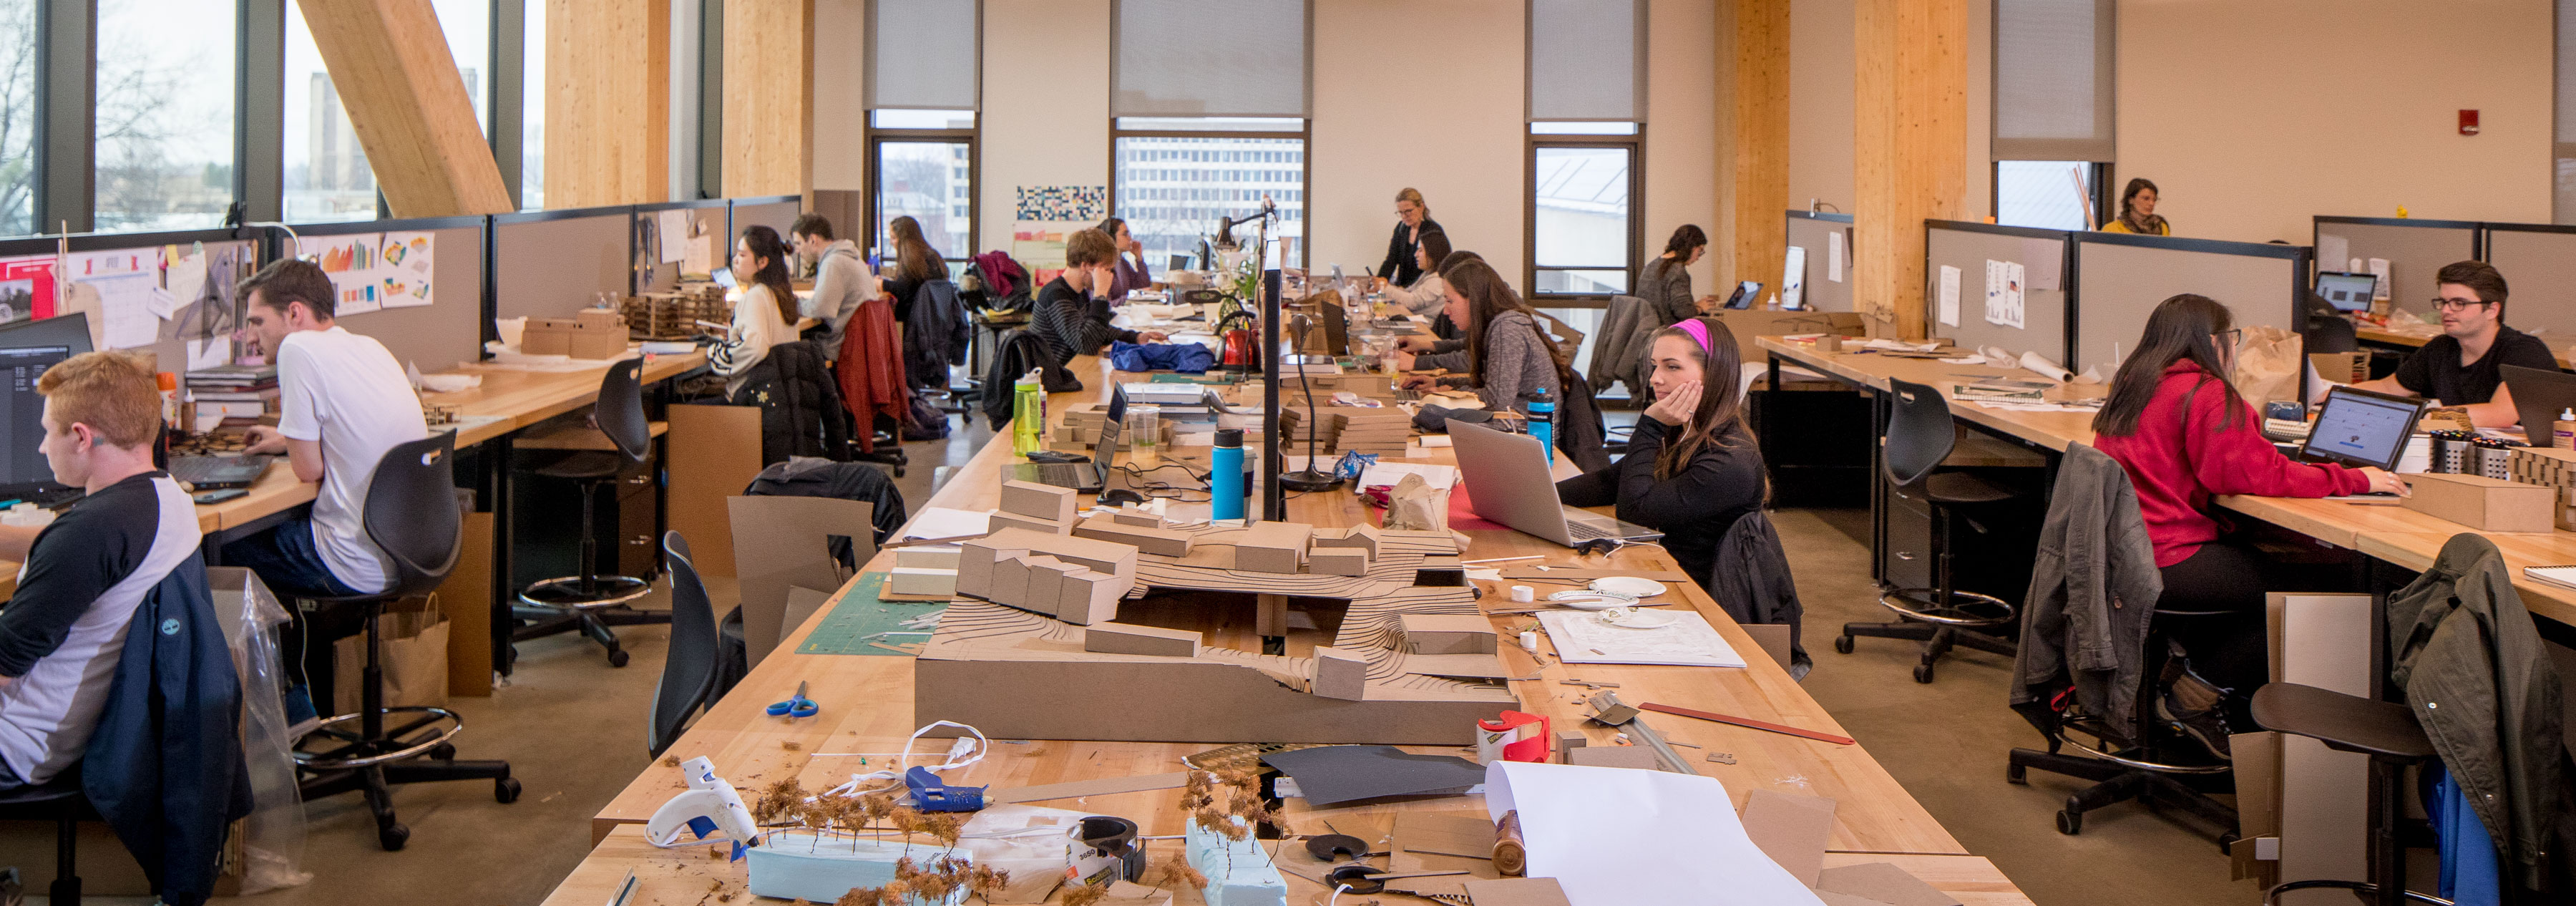 A view into the Architecture student work space